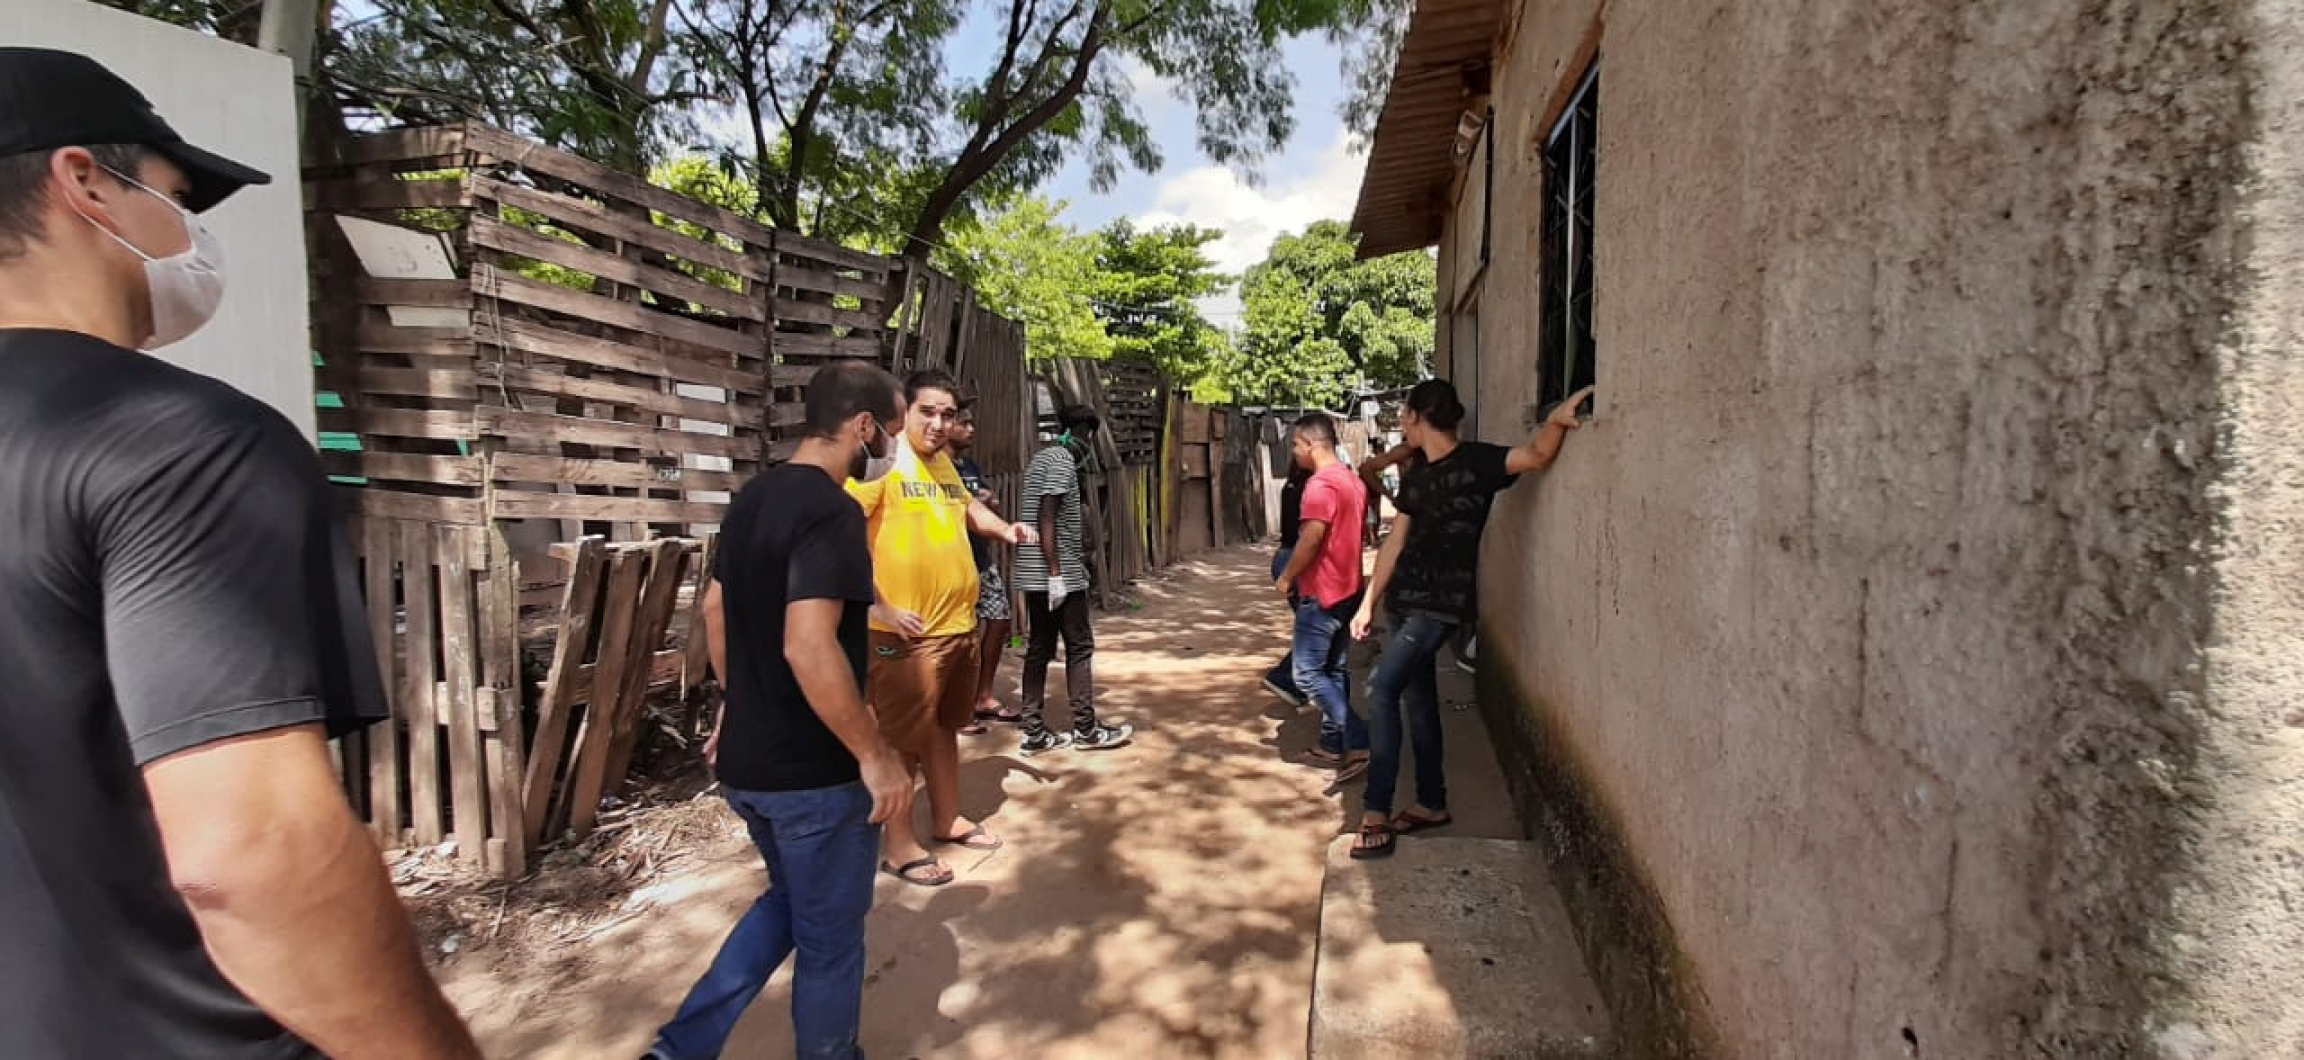 Many residents in vulnerable Brazilian communities are afraid not only of the coronavirus, but of simply surviving and not having enough to eat. A delivery of food was made Sundayin Parque das Missoes.